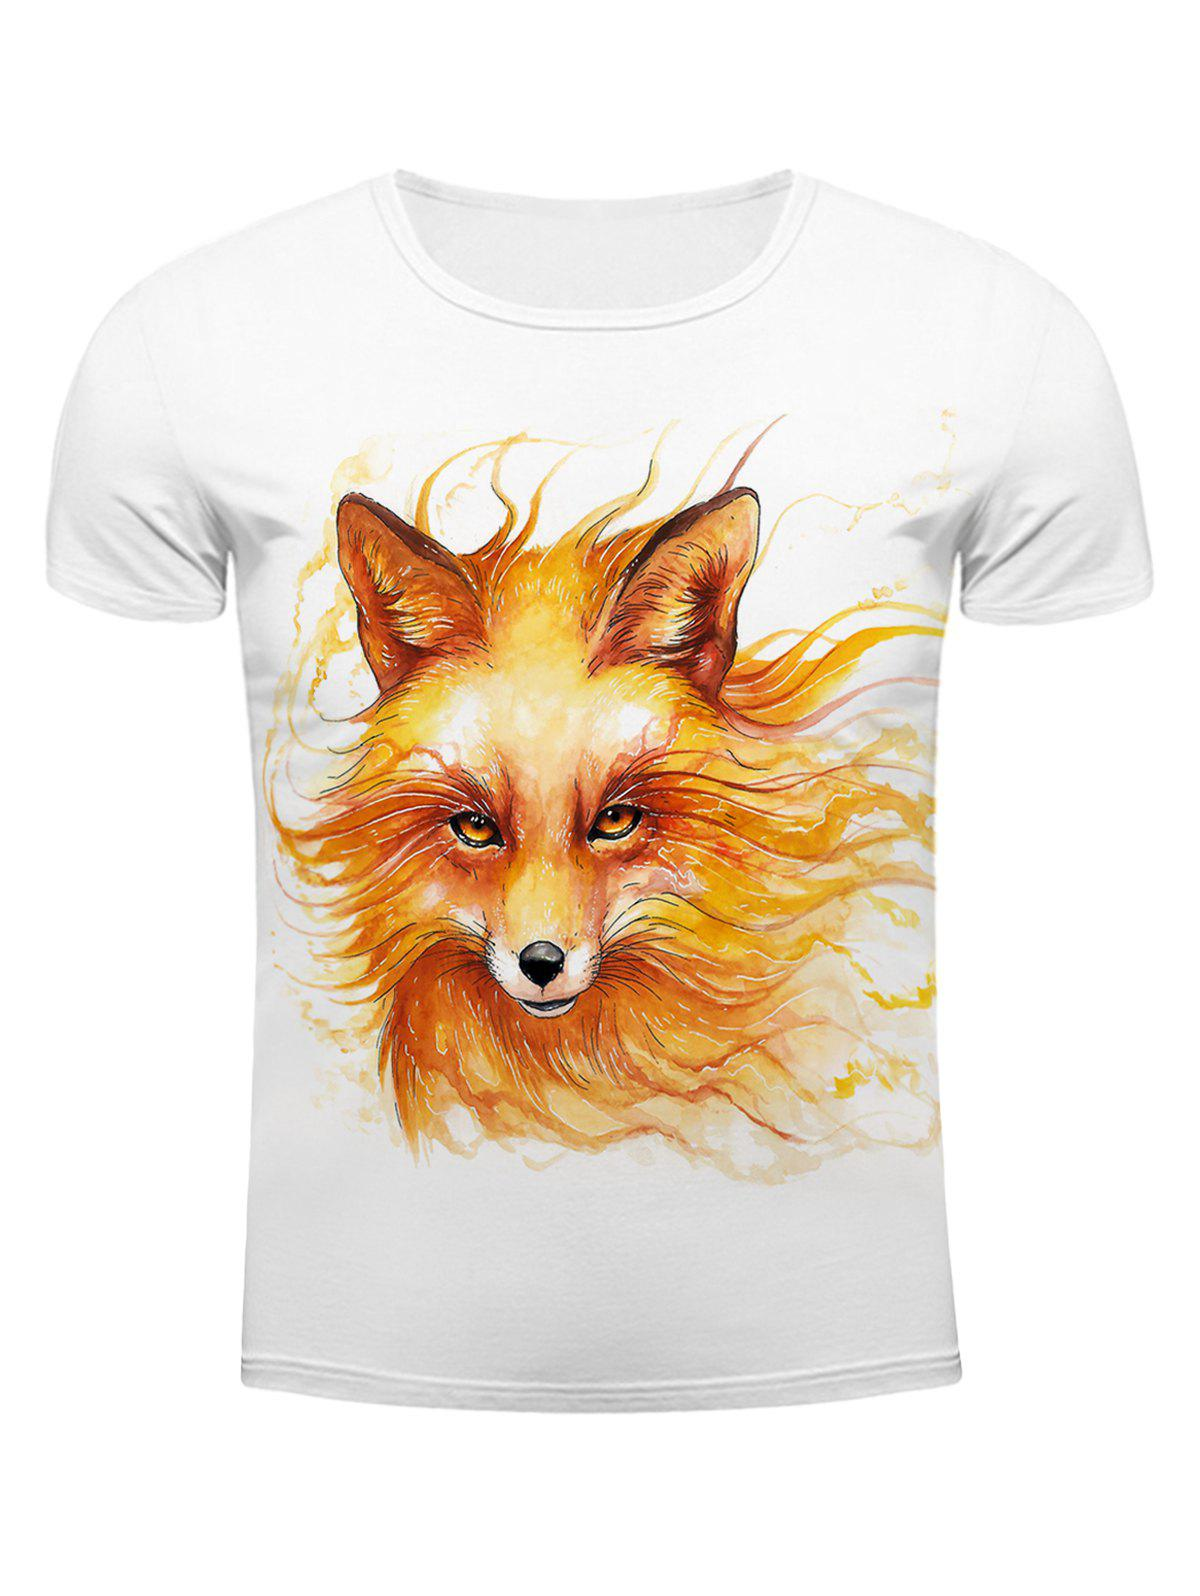 White Round Neck Cool Wolf Head Pattern Slimming Short Sleeves 3D T-Shirt For MenMEN<br><br>Size: M; Color: WHITE; Style: Fashion; Material: Cotton Blends; Sleeve Length: Short; Collar: Round Neck; Embellishment: 3D Print; Pattern Type: Animal; Weight: 0.231kg; Package Contents: 1 x T-Shirt;